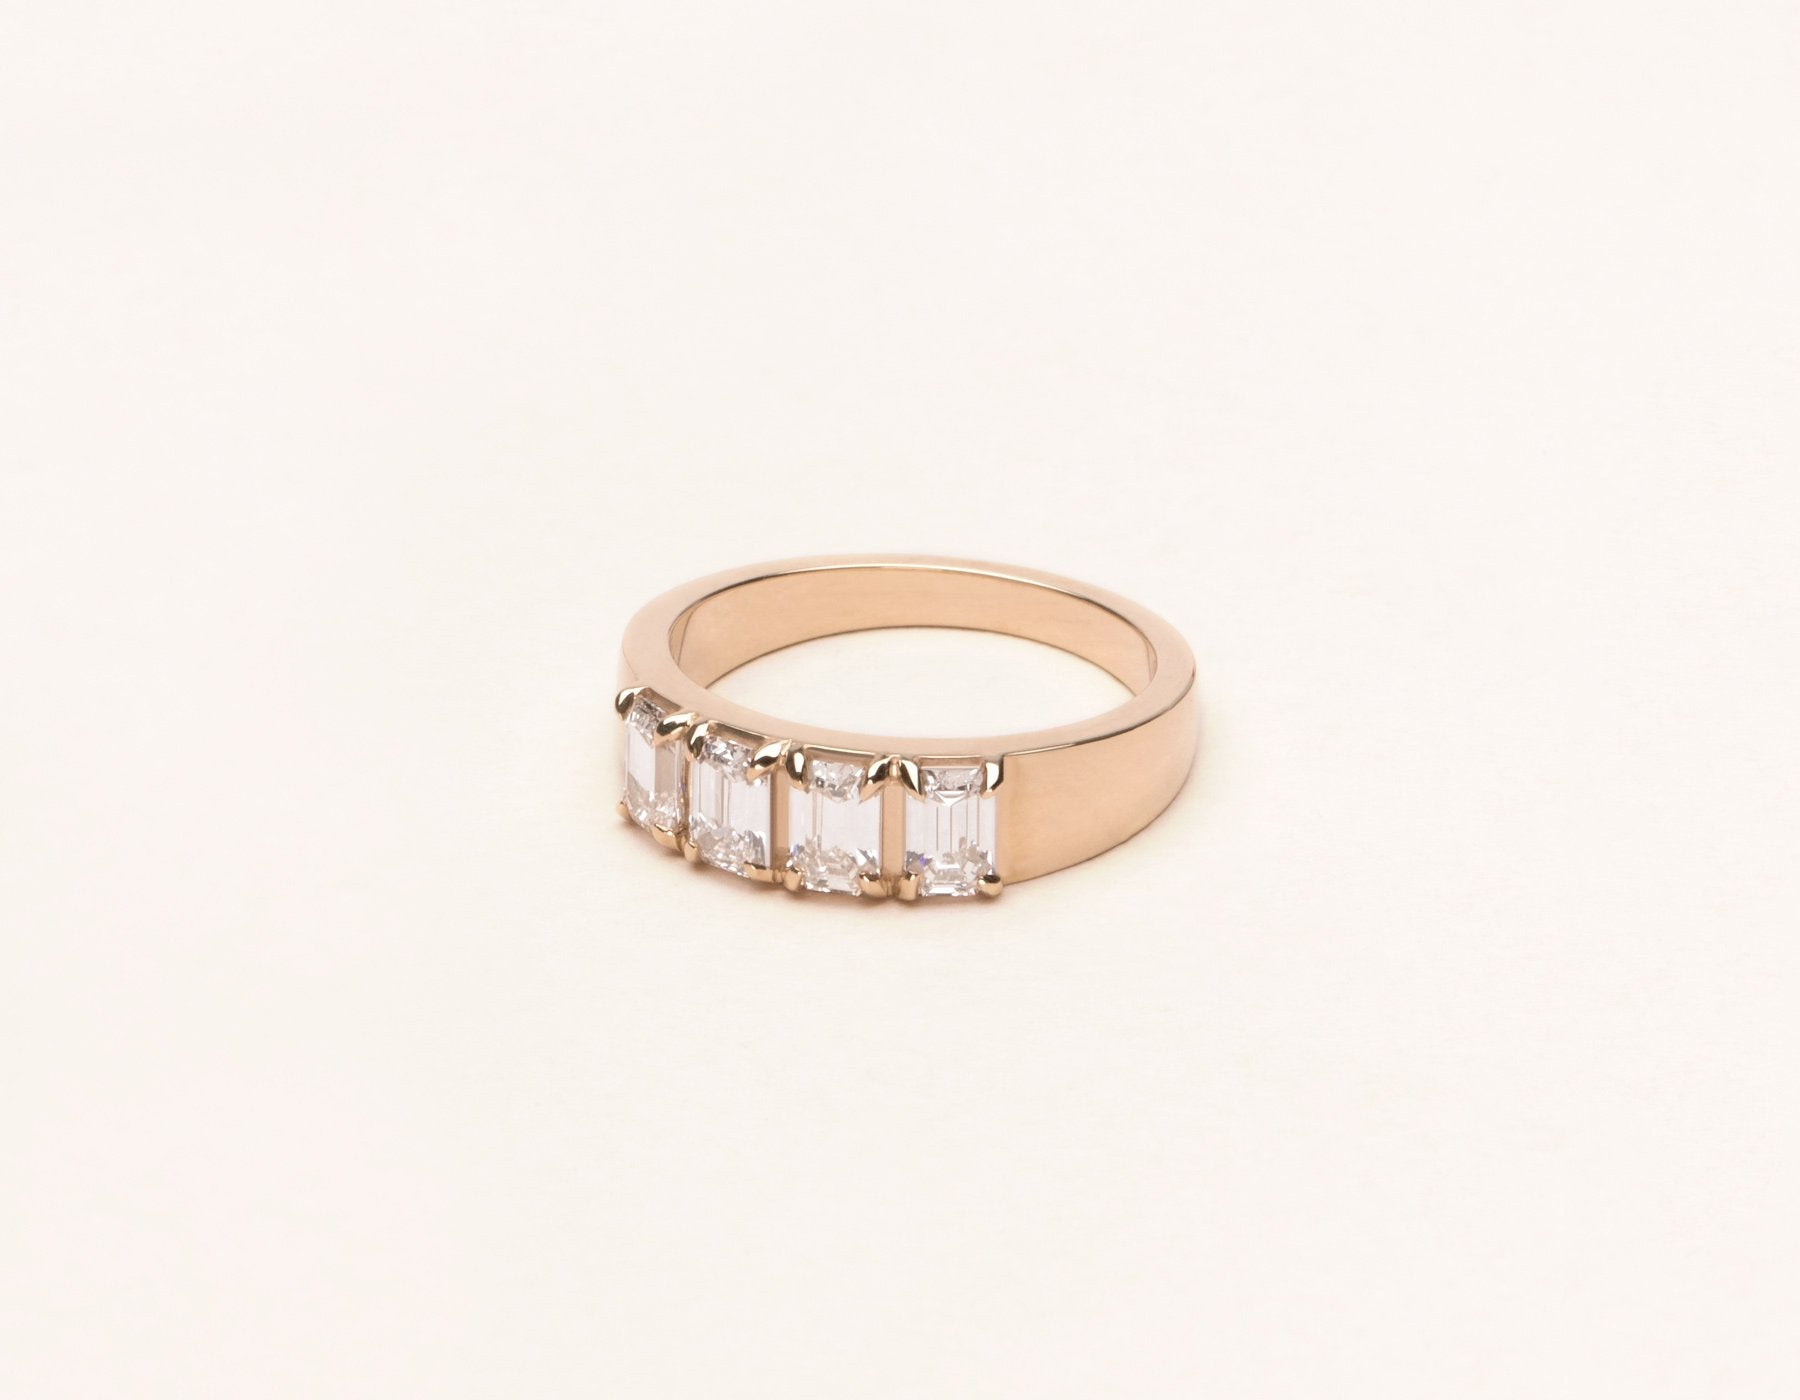 Simple elegant 14k solid gold Emerald Tetrad Band diamond ring by Vrai and Oro minimalist jewelry, 14K Rose Gold